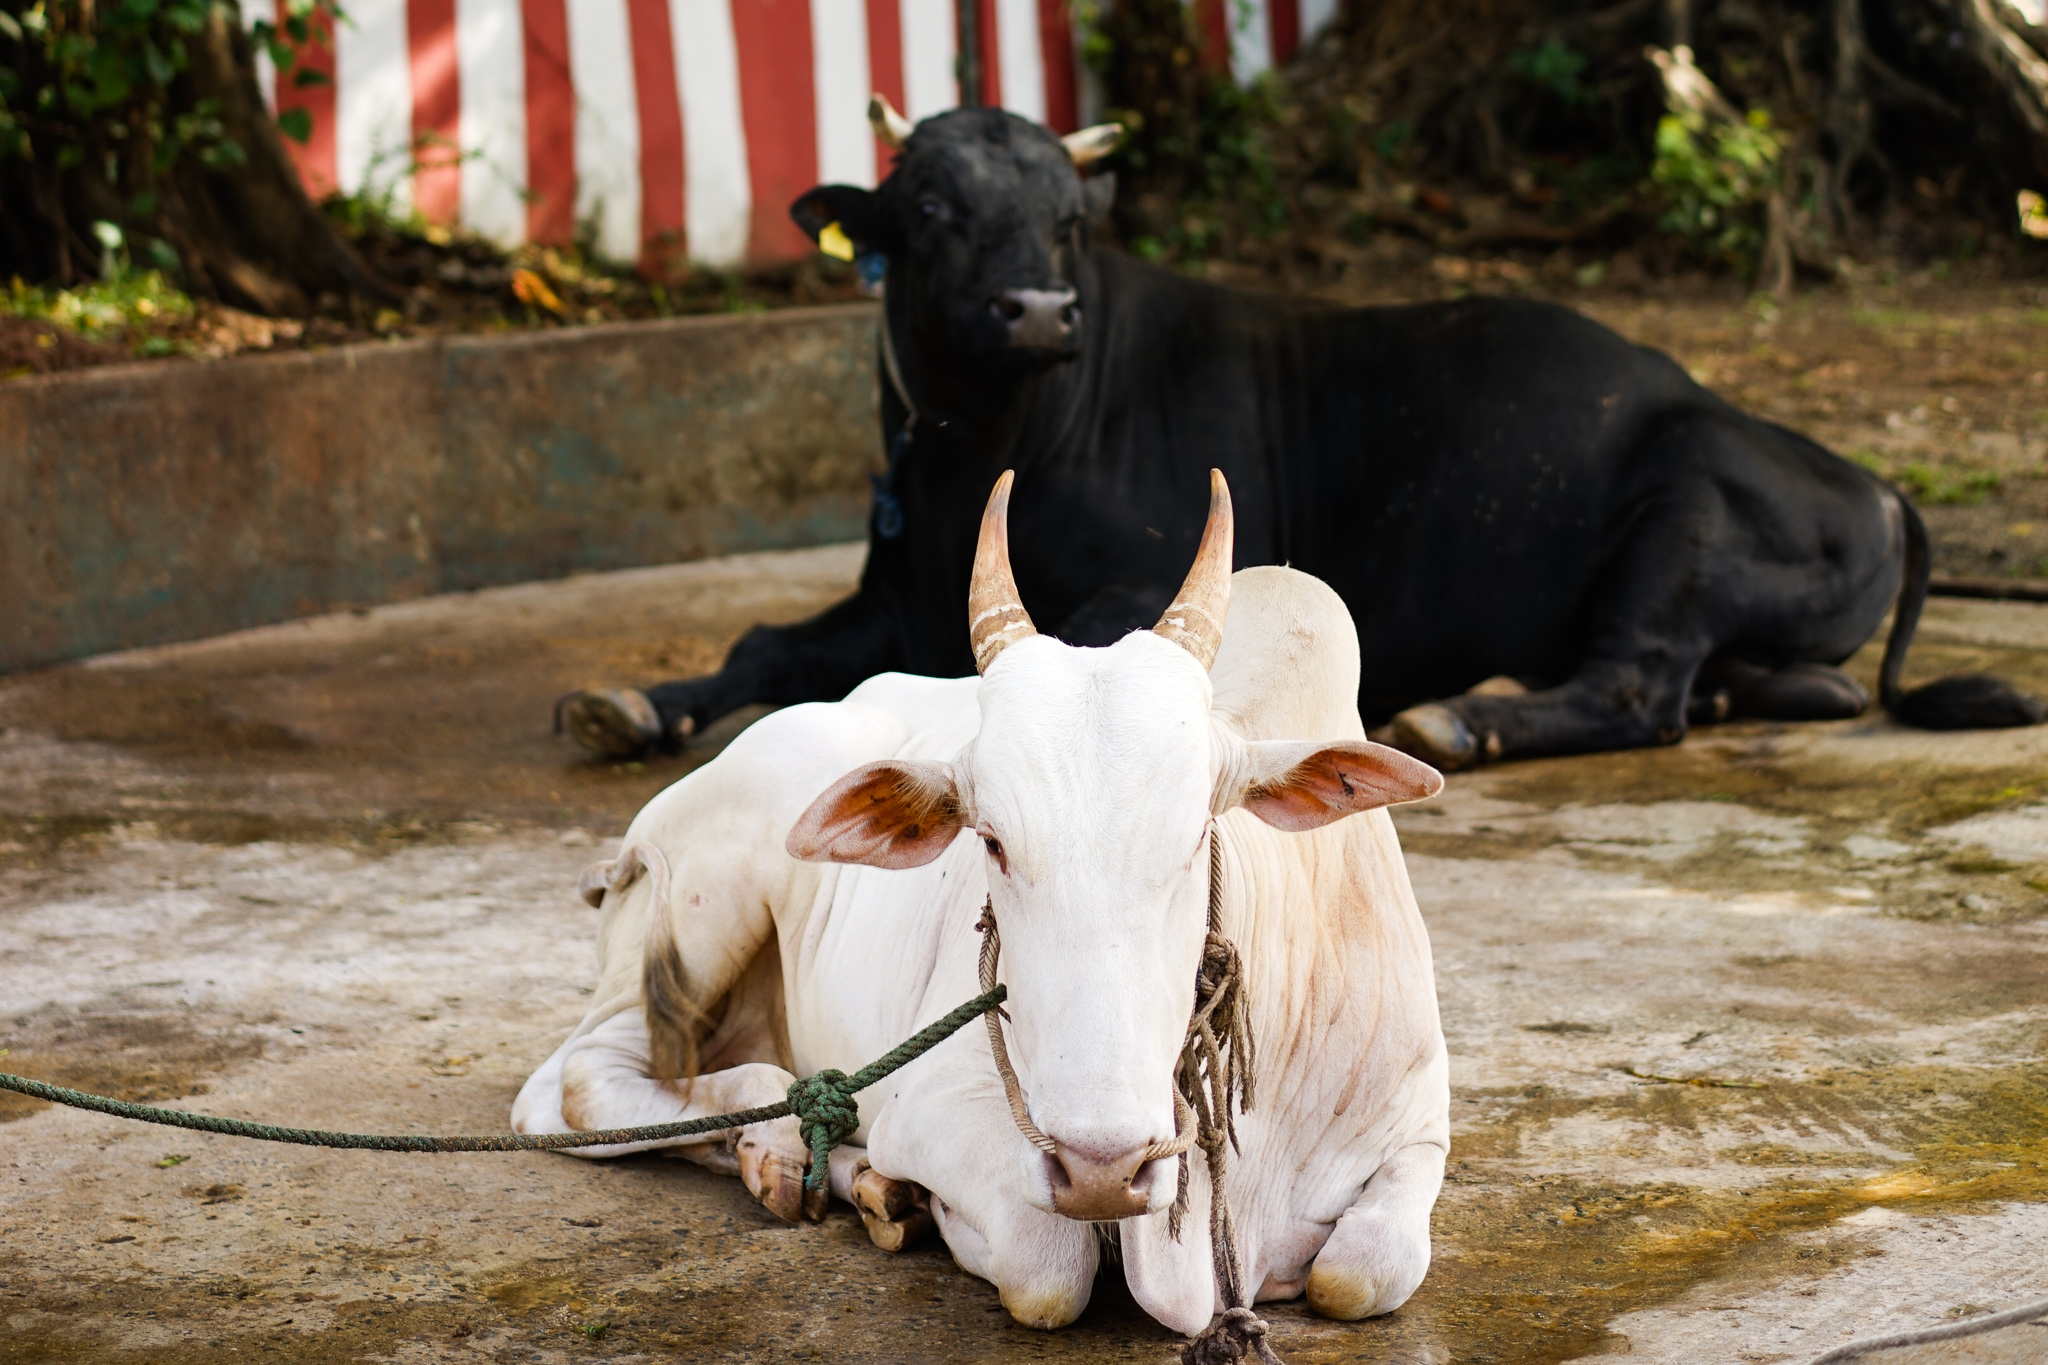 Lord Shiva's vehicle is the sacred cow and is kept on the premises